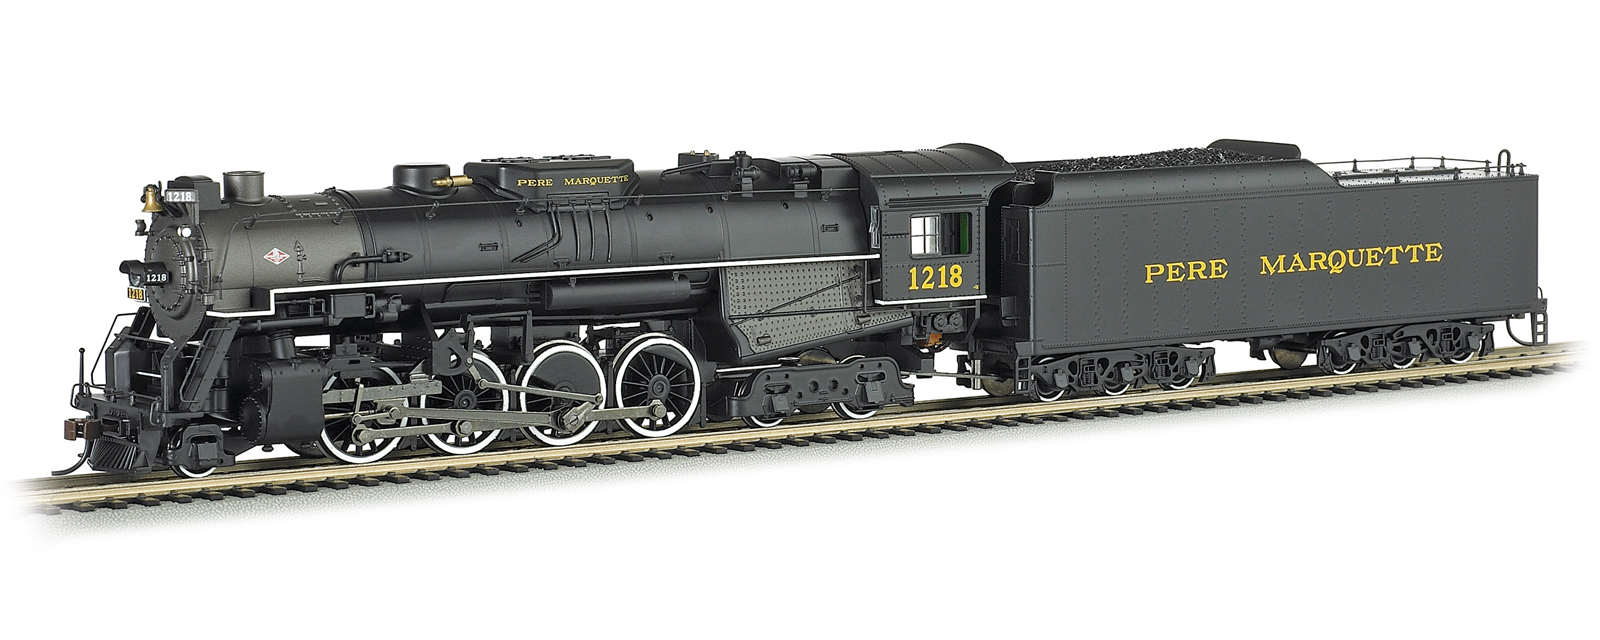 drones kits with Bachmann Ho 2 8 4 Berkshire Steam Lo Otive Pere Marquette No 1218 on Register Supplier additionally Remove Anything From Metal further Handy Bowl also Tiny Toy Cartesian Diver together with Node Mcu Esp12f Wifi Board With 8 Relay With Case.